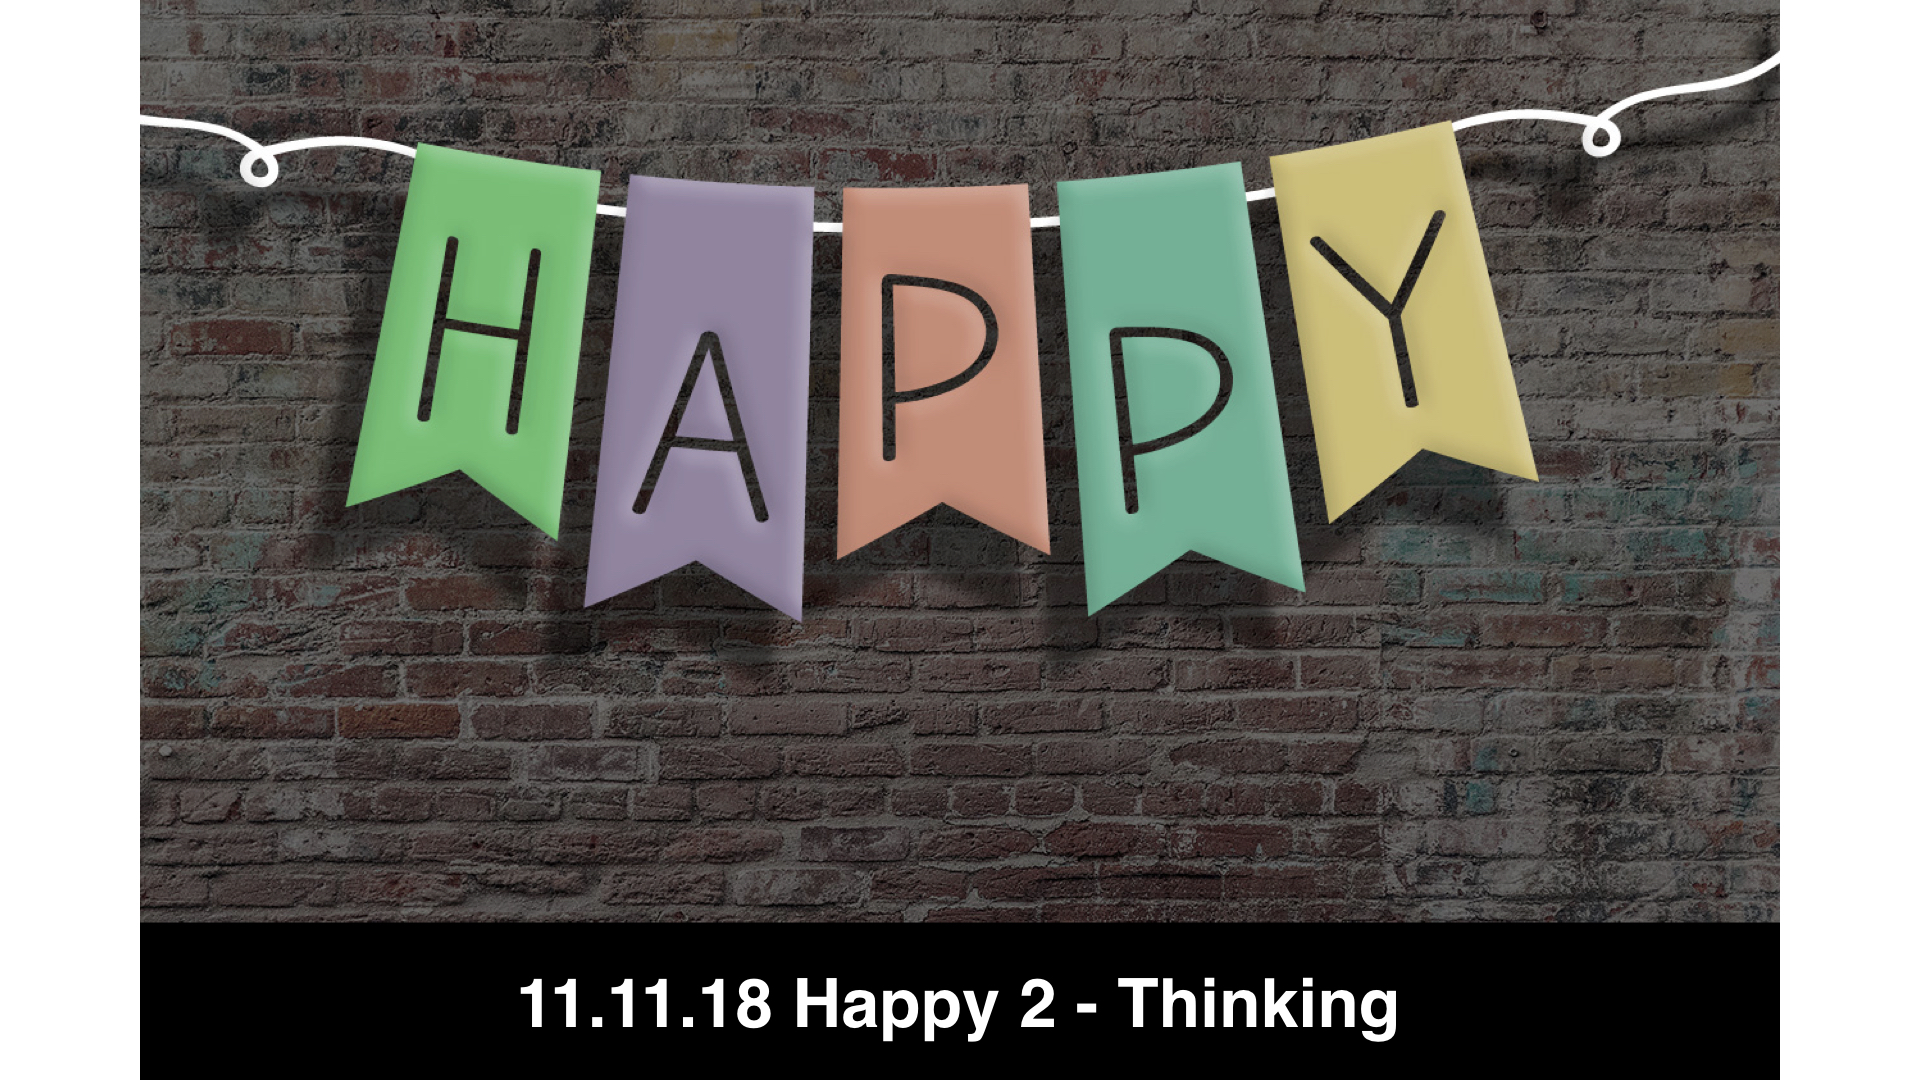 11.11.18 Happy 2 - Thinking